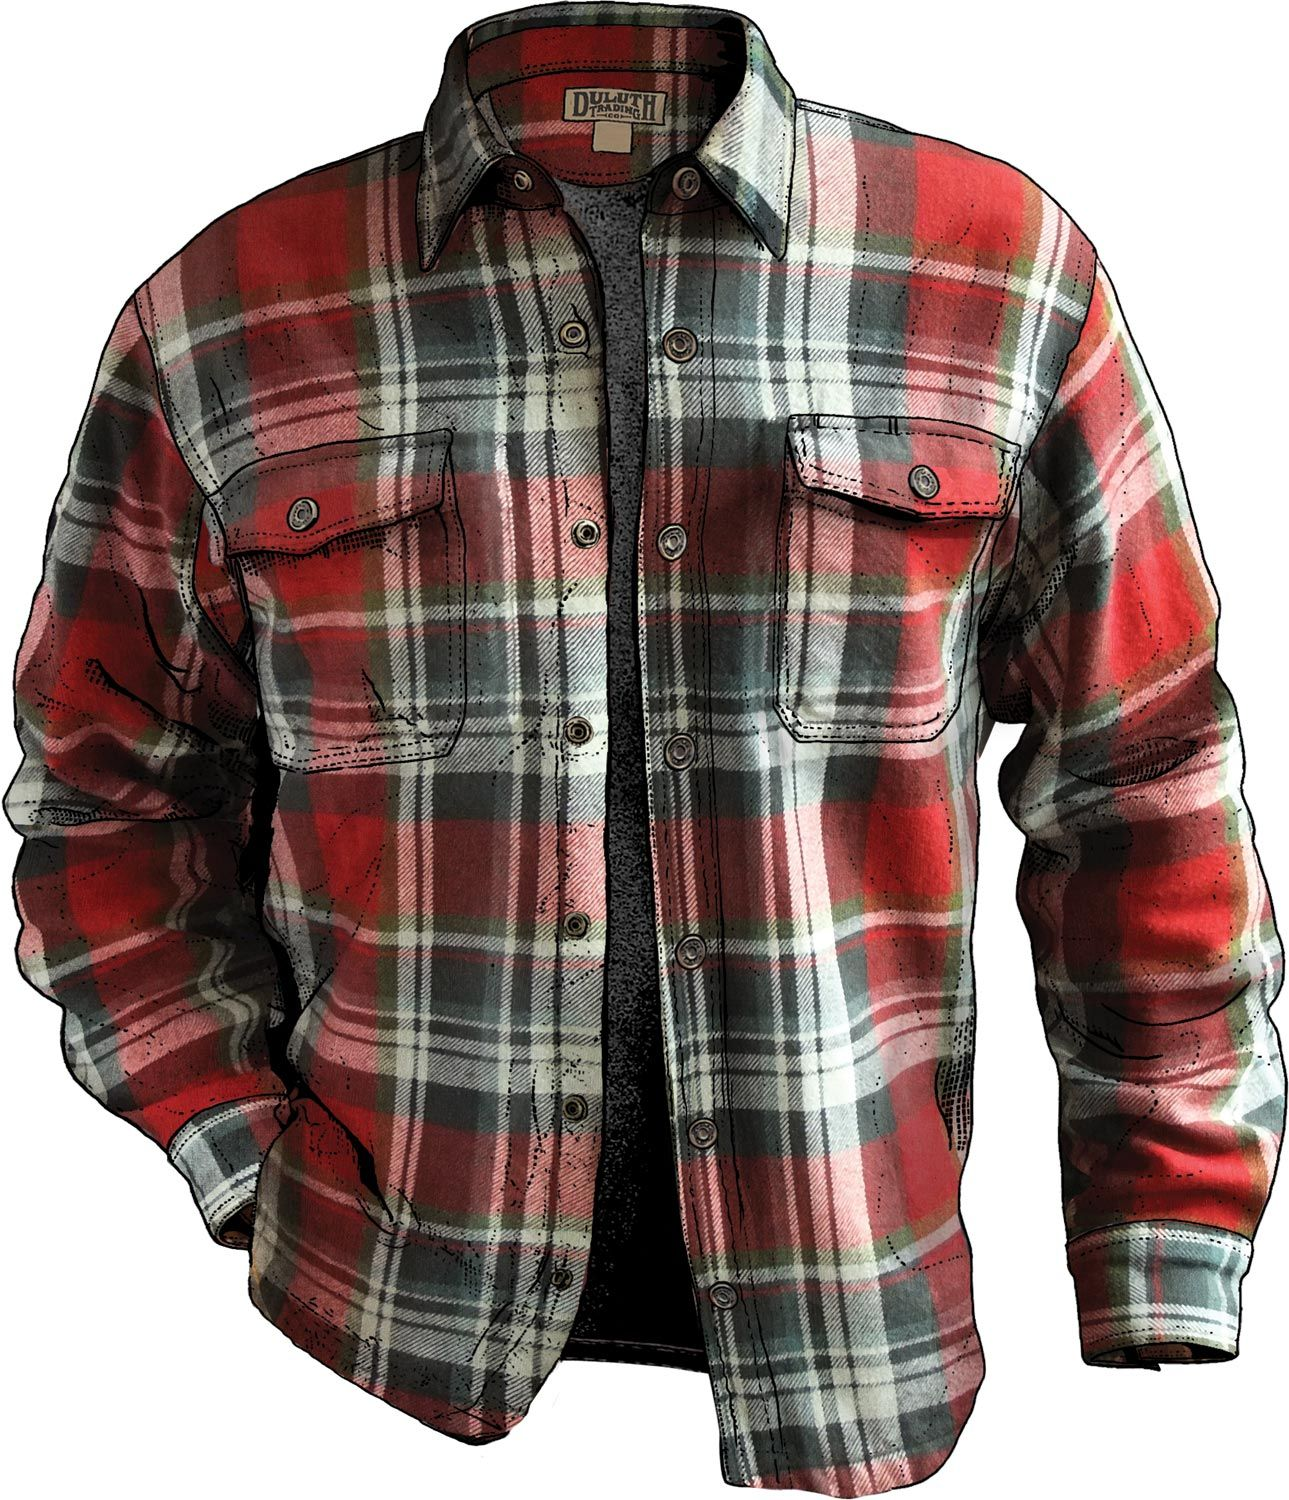 Mens Flapjack Flannel Shirt Jac In 2018 Things I Would Like Tendencies Kemeja Flanel Square Star Brown L Fleece Lined Is Built For Real Work A Thick Warm Jacket Thats Easy To Throw Off When The Action Heats Up Duluth Trading Exclusive